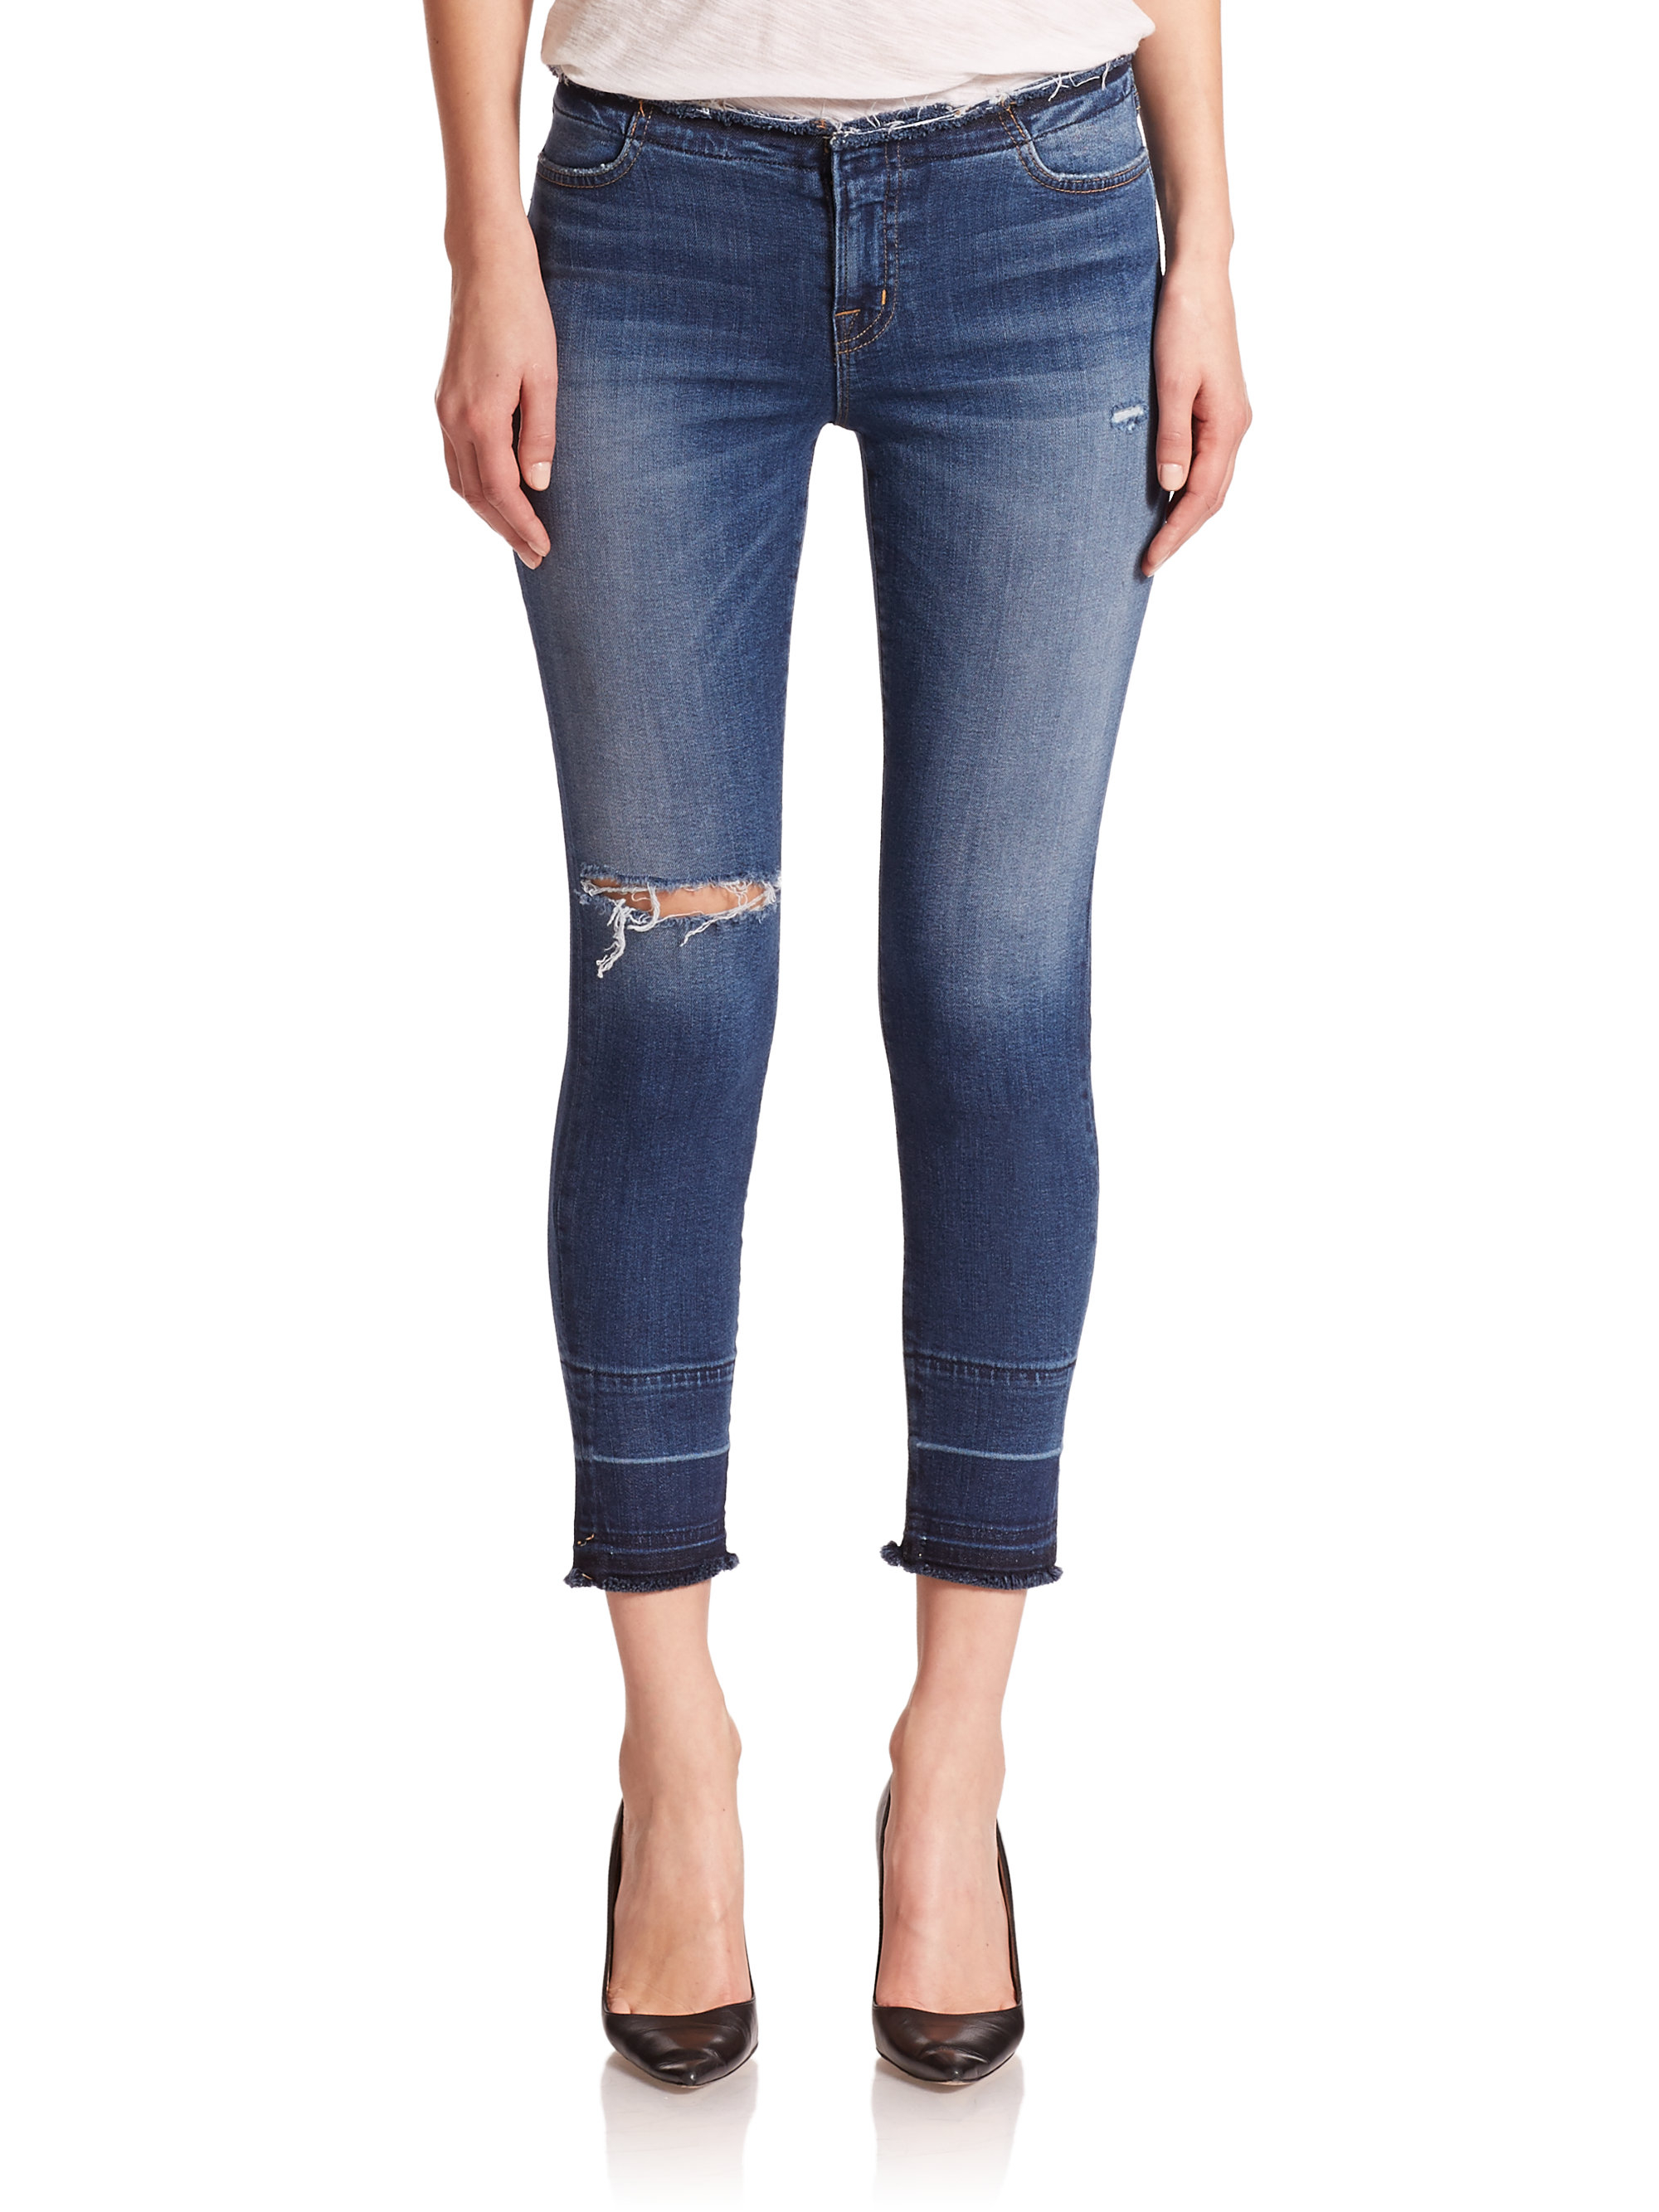 Buy Cheap Clearance Cheap Really distresed cropped jeans - Blue J Brand Many Colors Best Wholesale Cheap Price RPWb8Di